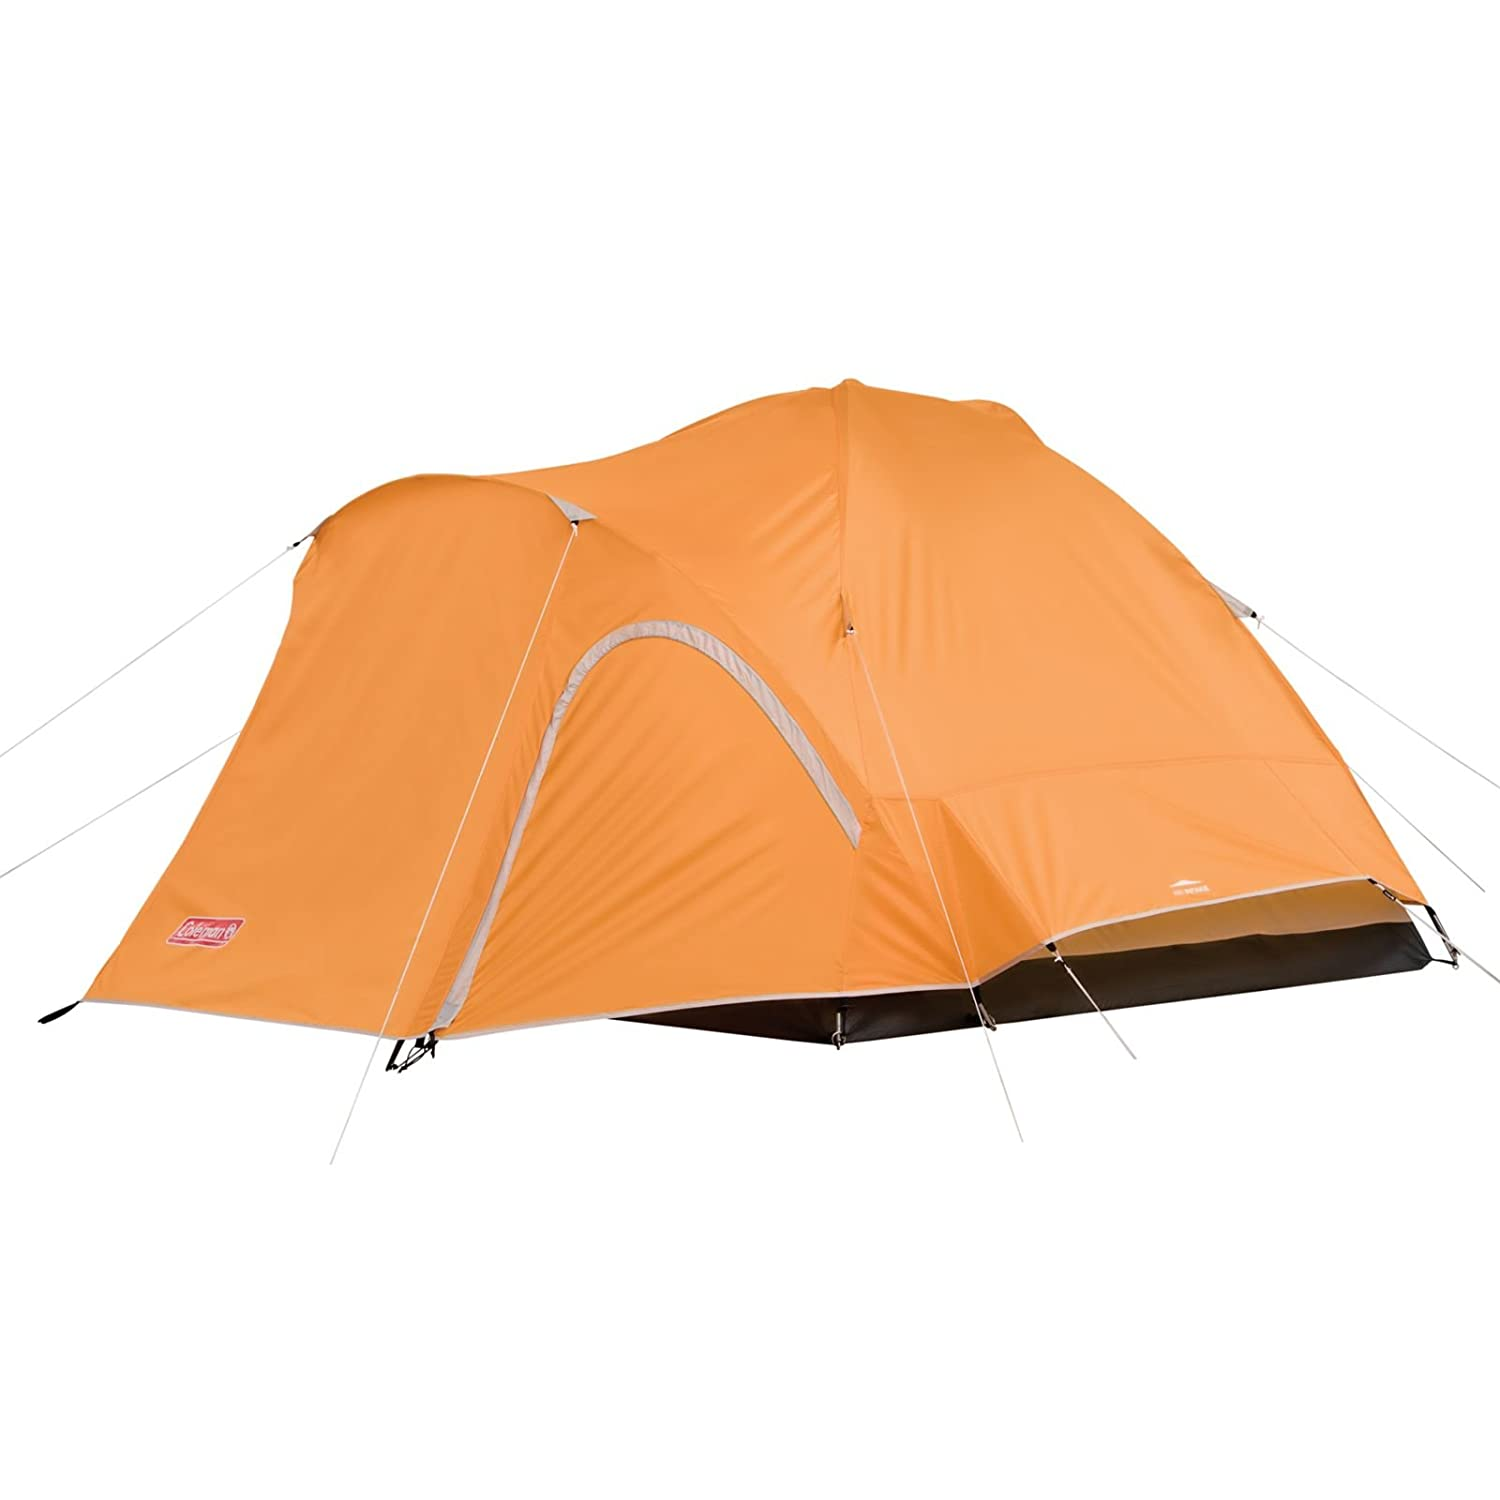 1. Coleman Hooligan Backpacking Tent